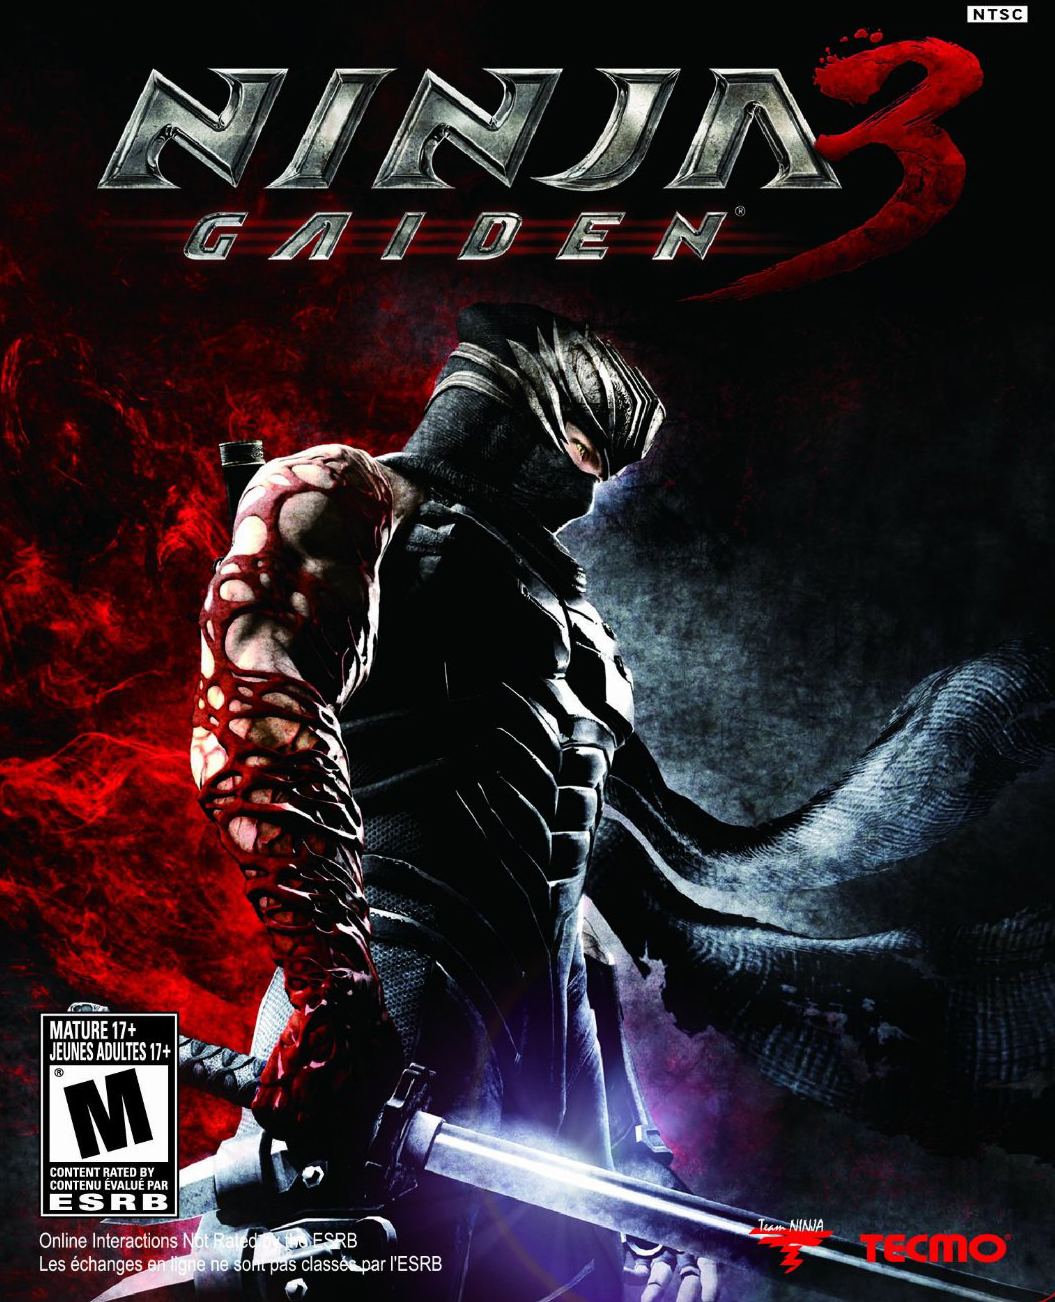 Ninja Gaiden 3: Fatal Flaws: When Games Totally Screw You Over